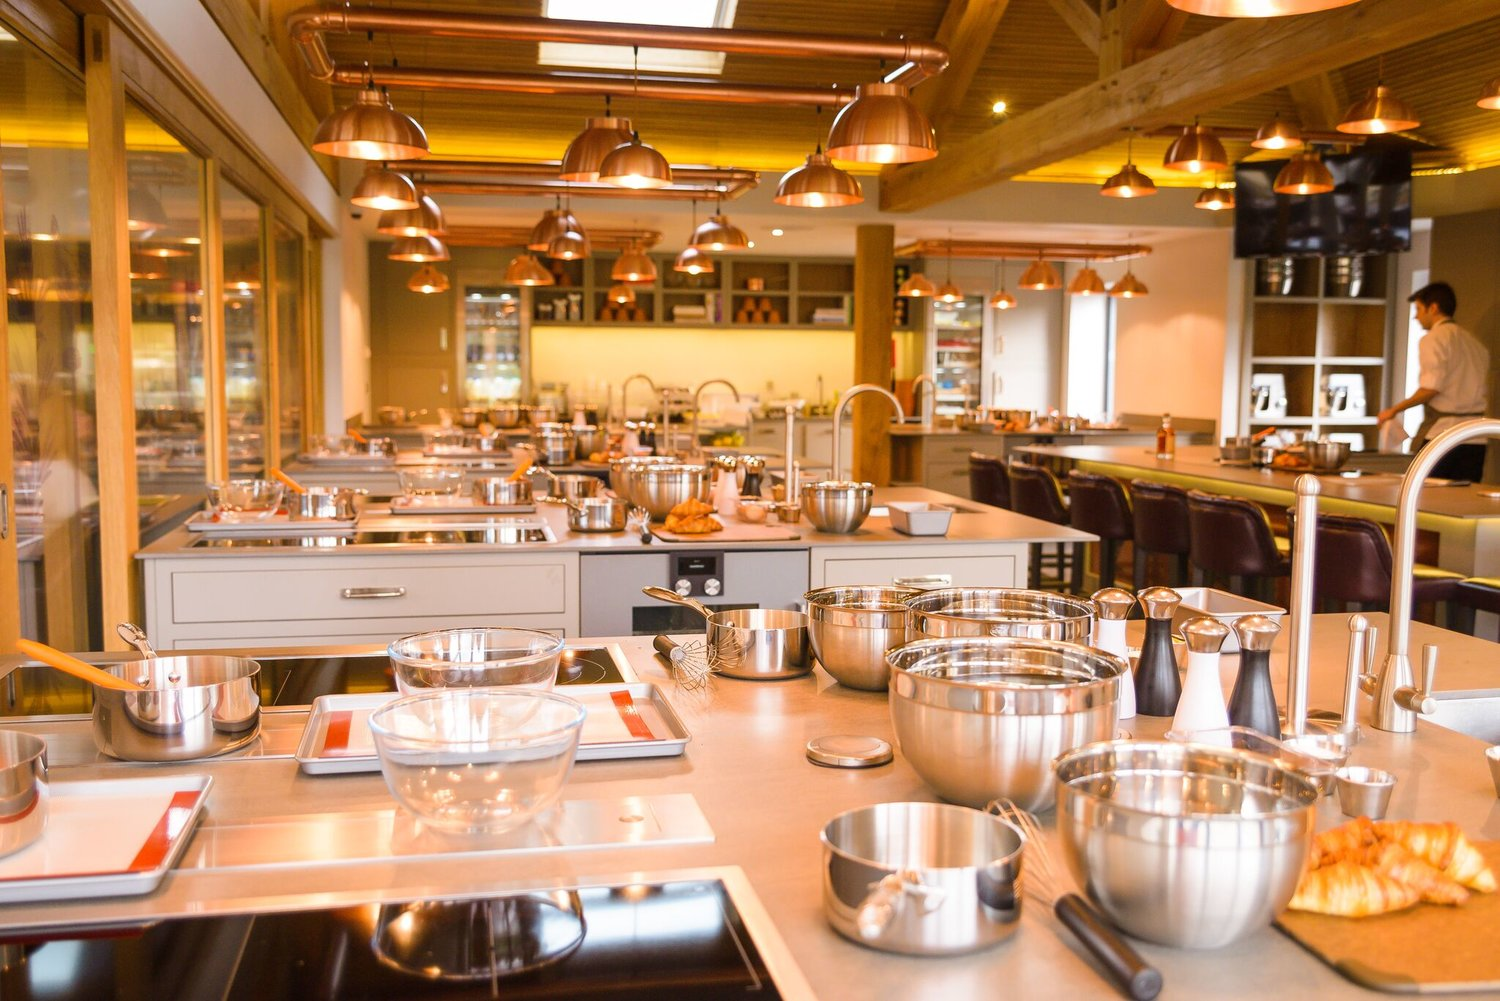 Home to The Kitchen's  Cookery School , booked guests are invited to learn new culinary skills and create considered masterpieces under the watchful eye of a Chef Tutor.